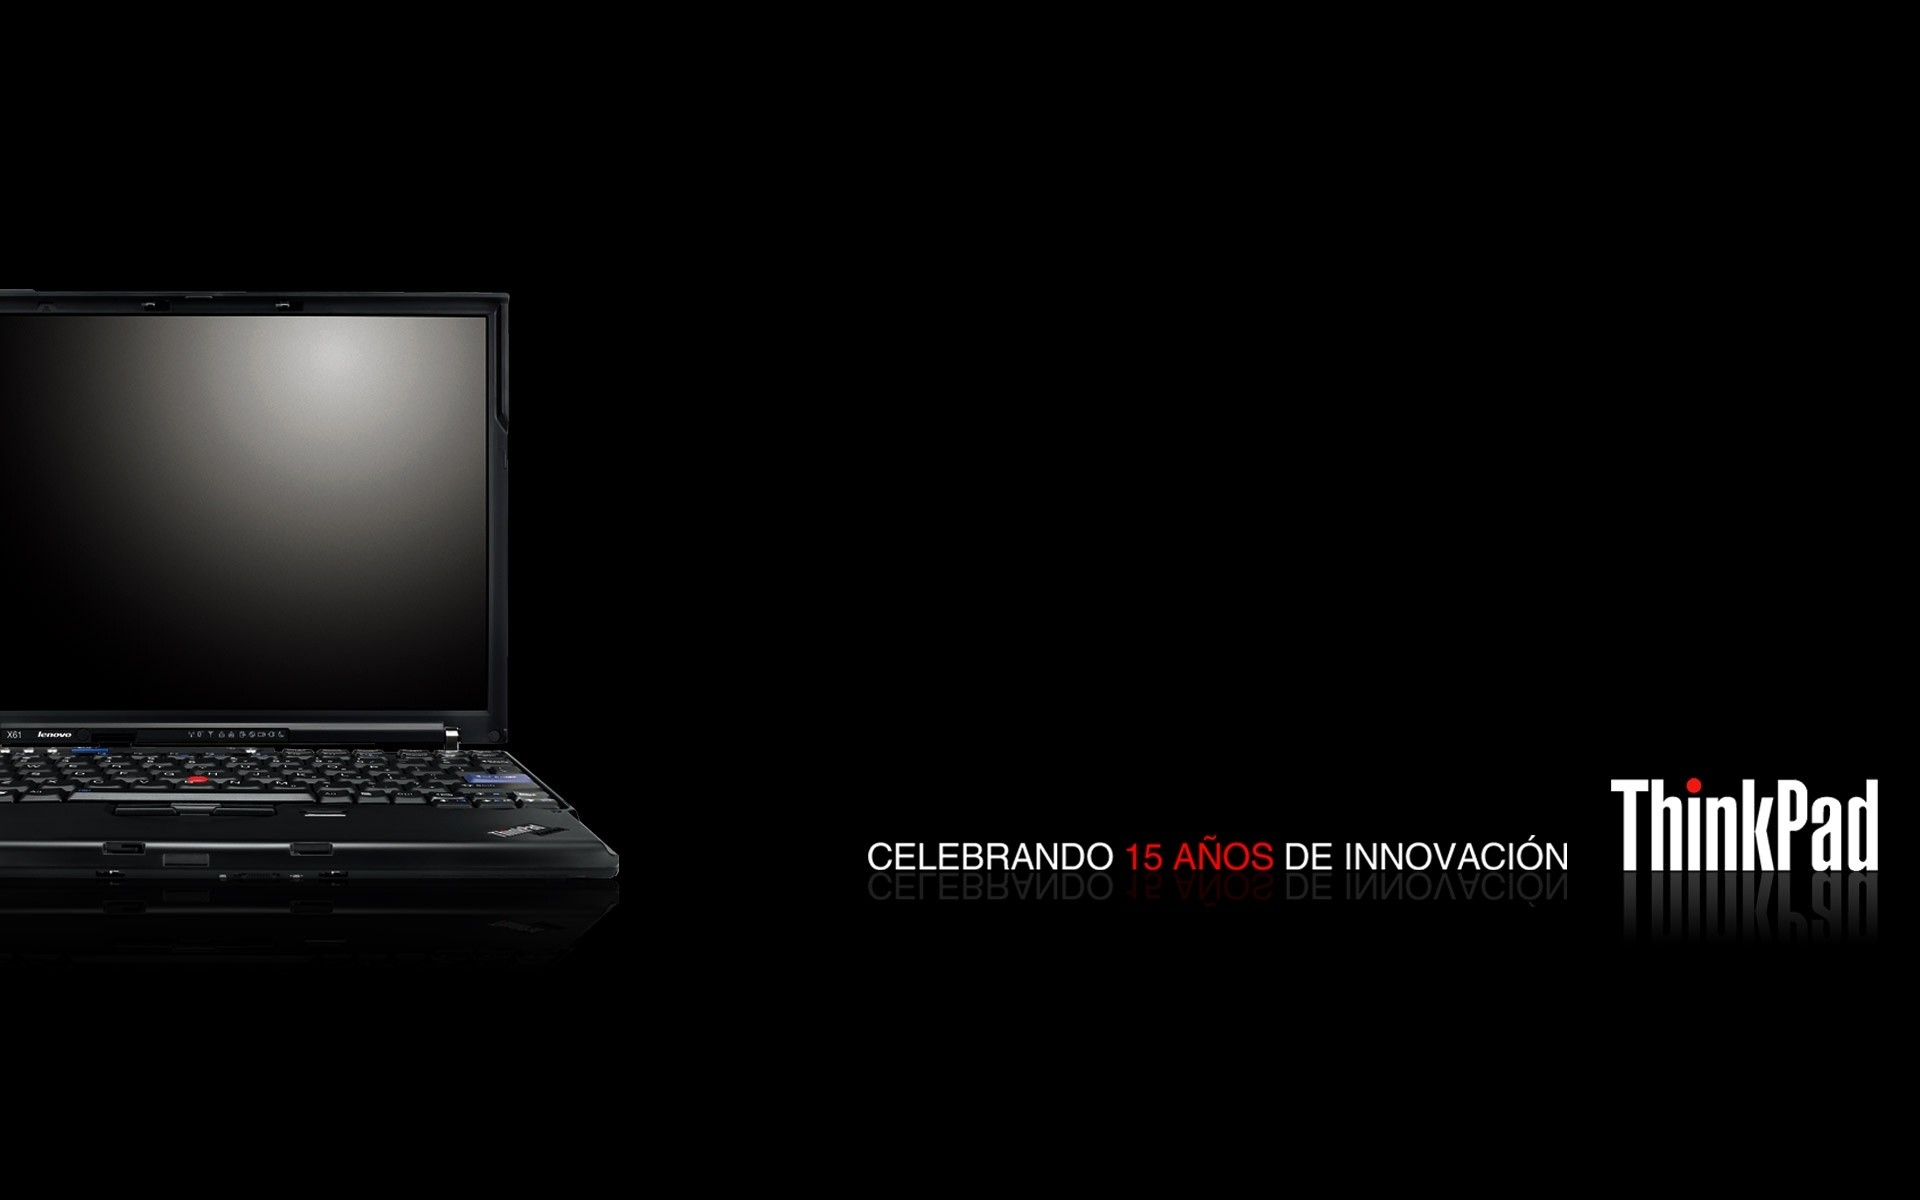 Ibm thinkpad wallpaper ibm wallpapers publicscrutiny Image collections